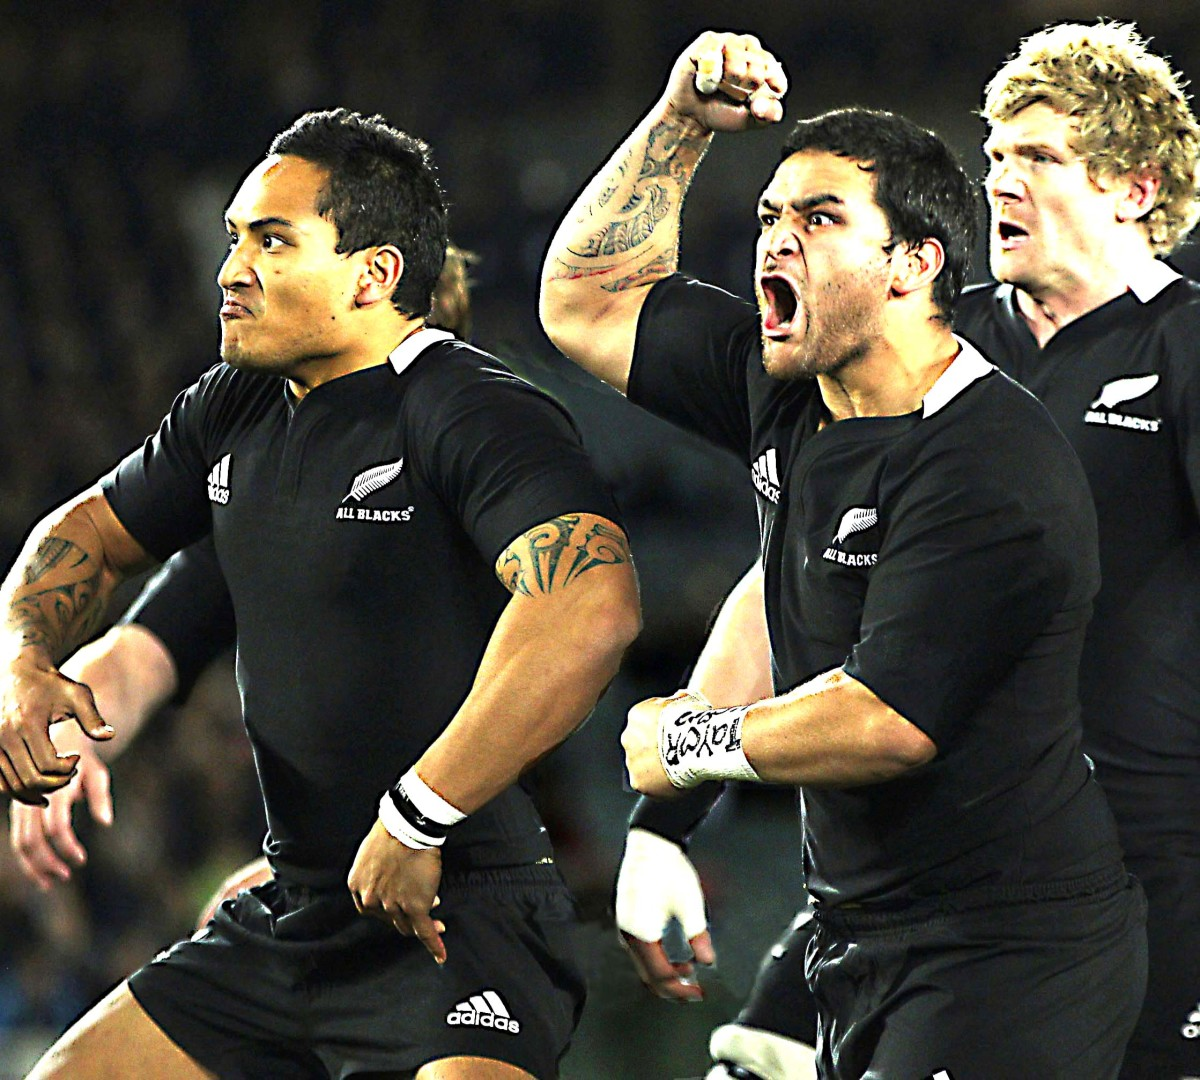 The New Zealand 'All Black' Haka - The Great War Dance and Sporting Spectacle